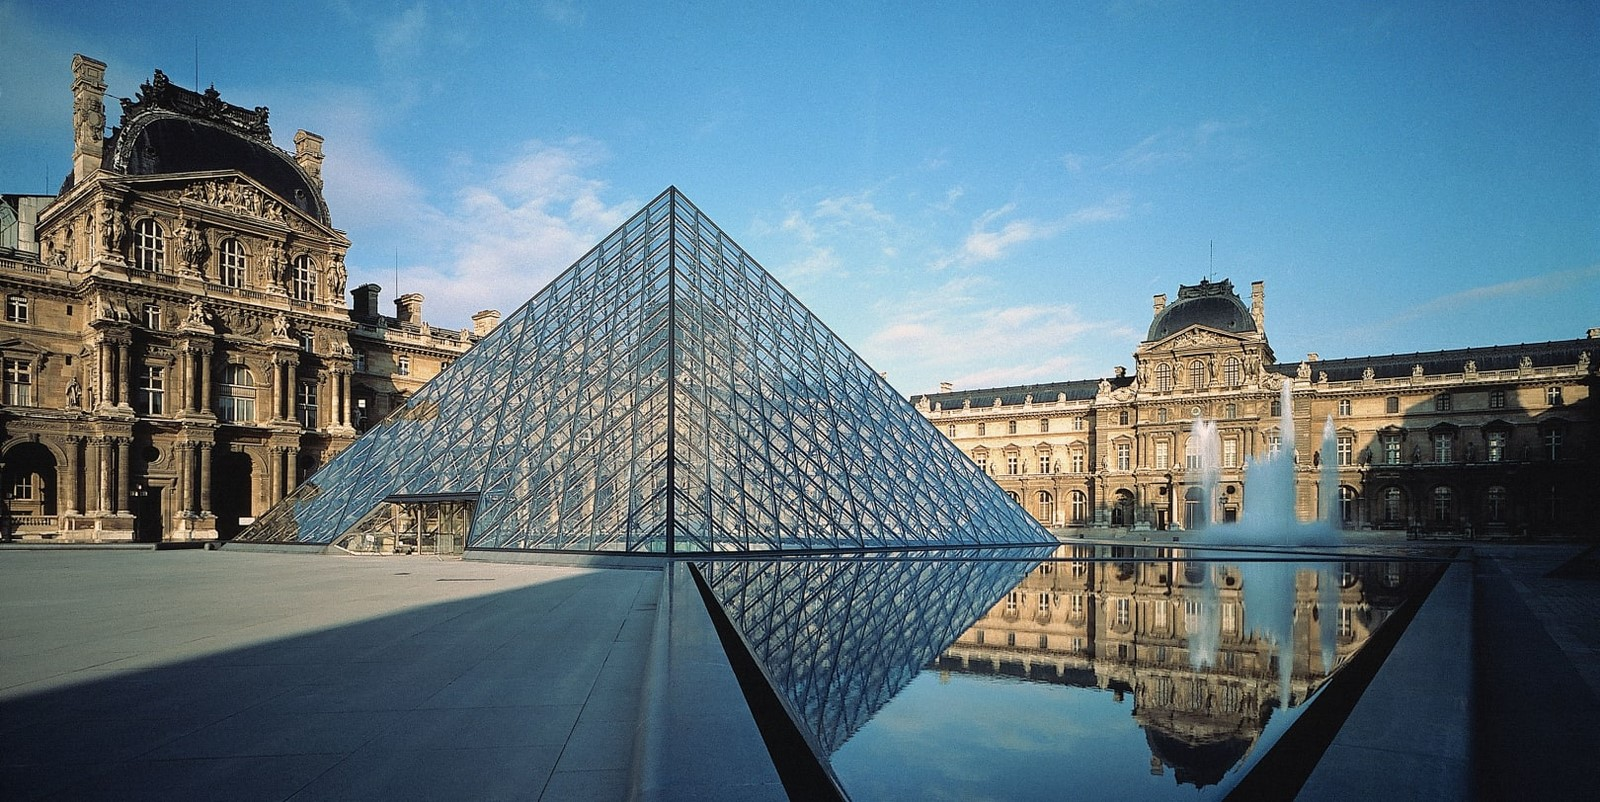 10 Things you did not know about Louvre Pyramid by I.M. Pei - sHEET2